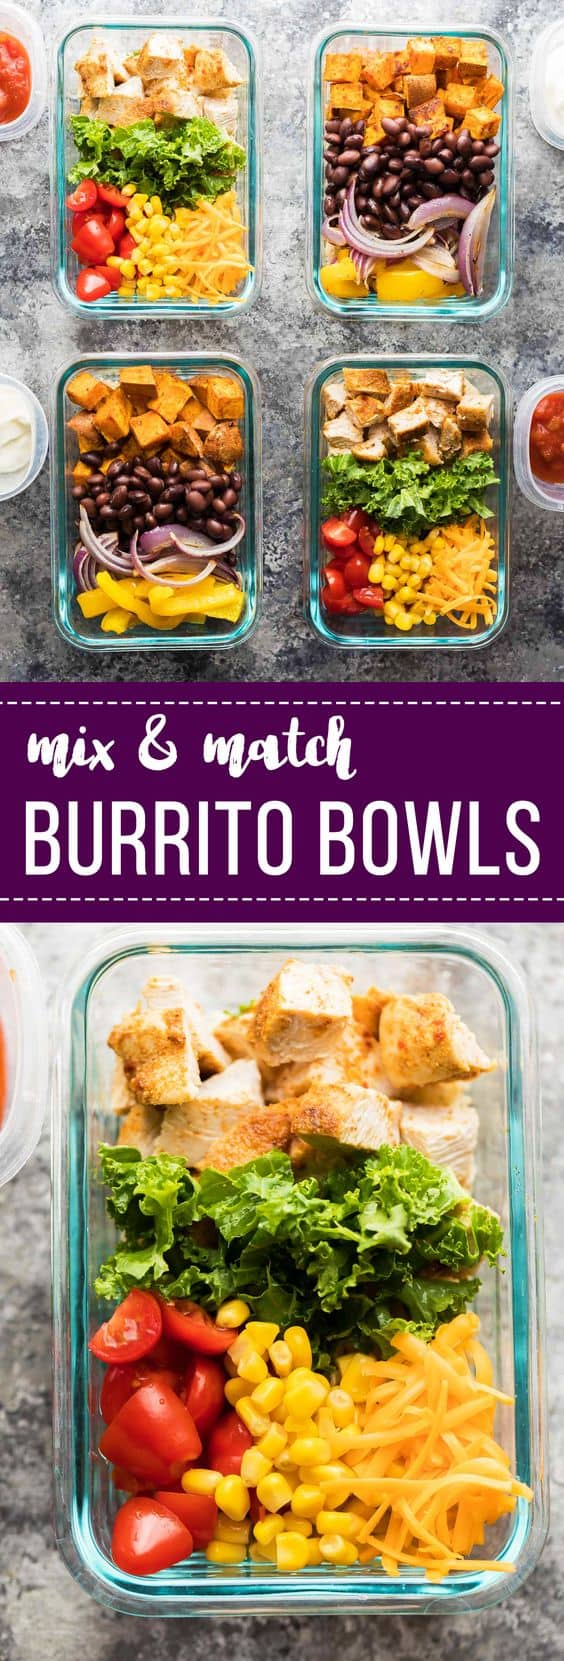 These mix & match meal prep burrito bowls will help you make four delicious lunches using what you have on hand in your pantry and fridge. Vegan and gluten free options! #mealprep #burritobowl #lunch #dinner #chicken #vegetarian #vegan #sweetpeasandsaffron